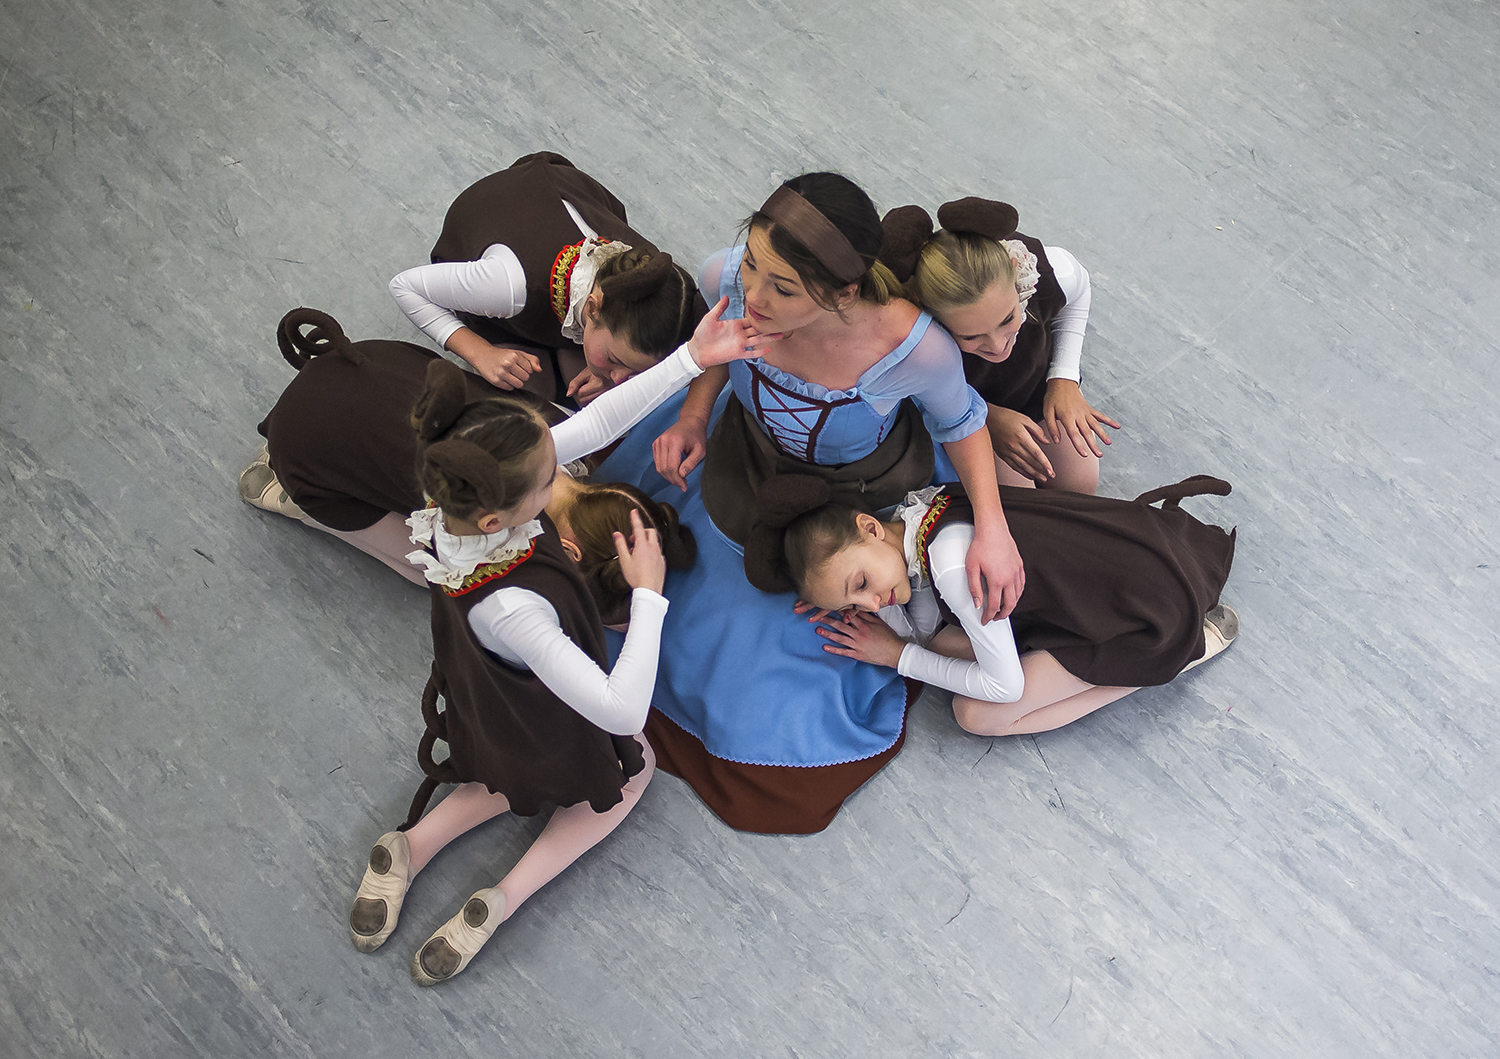 Olivia Pennell, as Cinderella, is surrounded by the mice during rehearsals for the Springfield Ballet Company's spring production of Cinderella at the Hoogland Center for the Arts, Sunday, March 17, 2019, in Springfield, Ill. [Justin L. Fowler/The State Journal-Register]